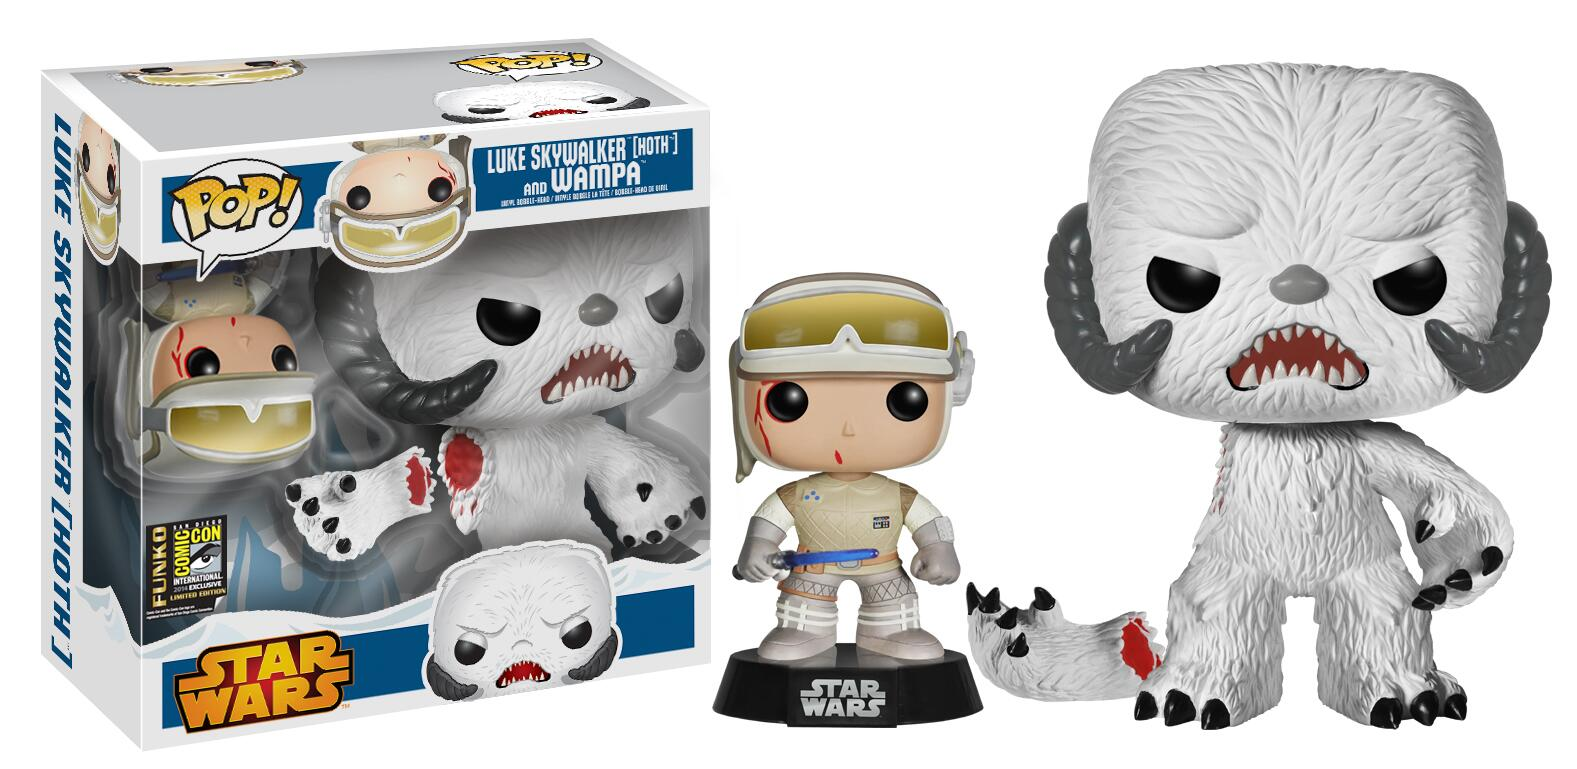 Funko On Twitter Quot The Star Wars Luke Skywalker Hoth And